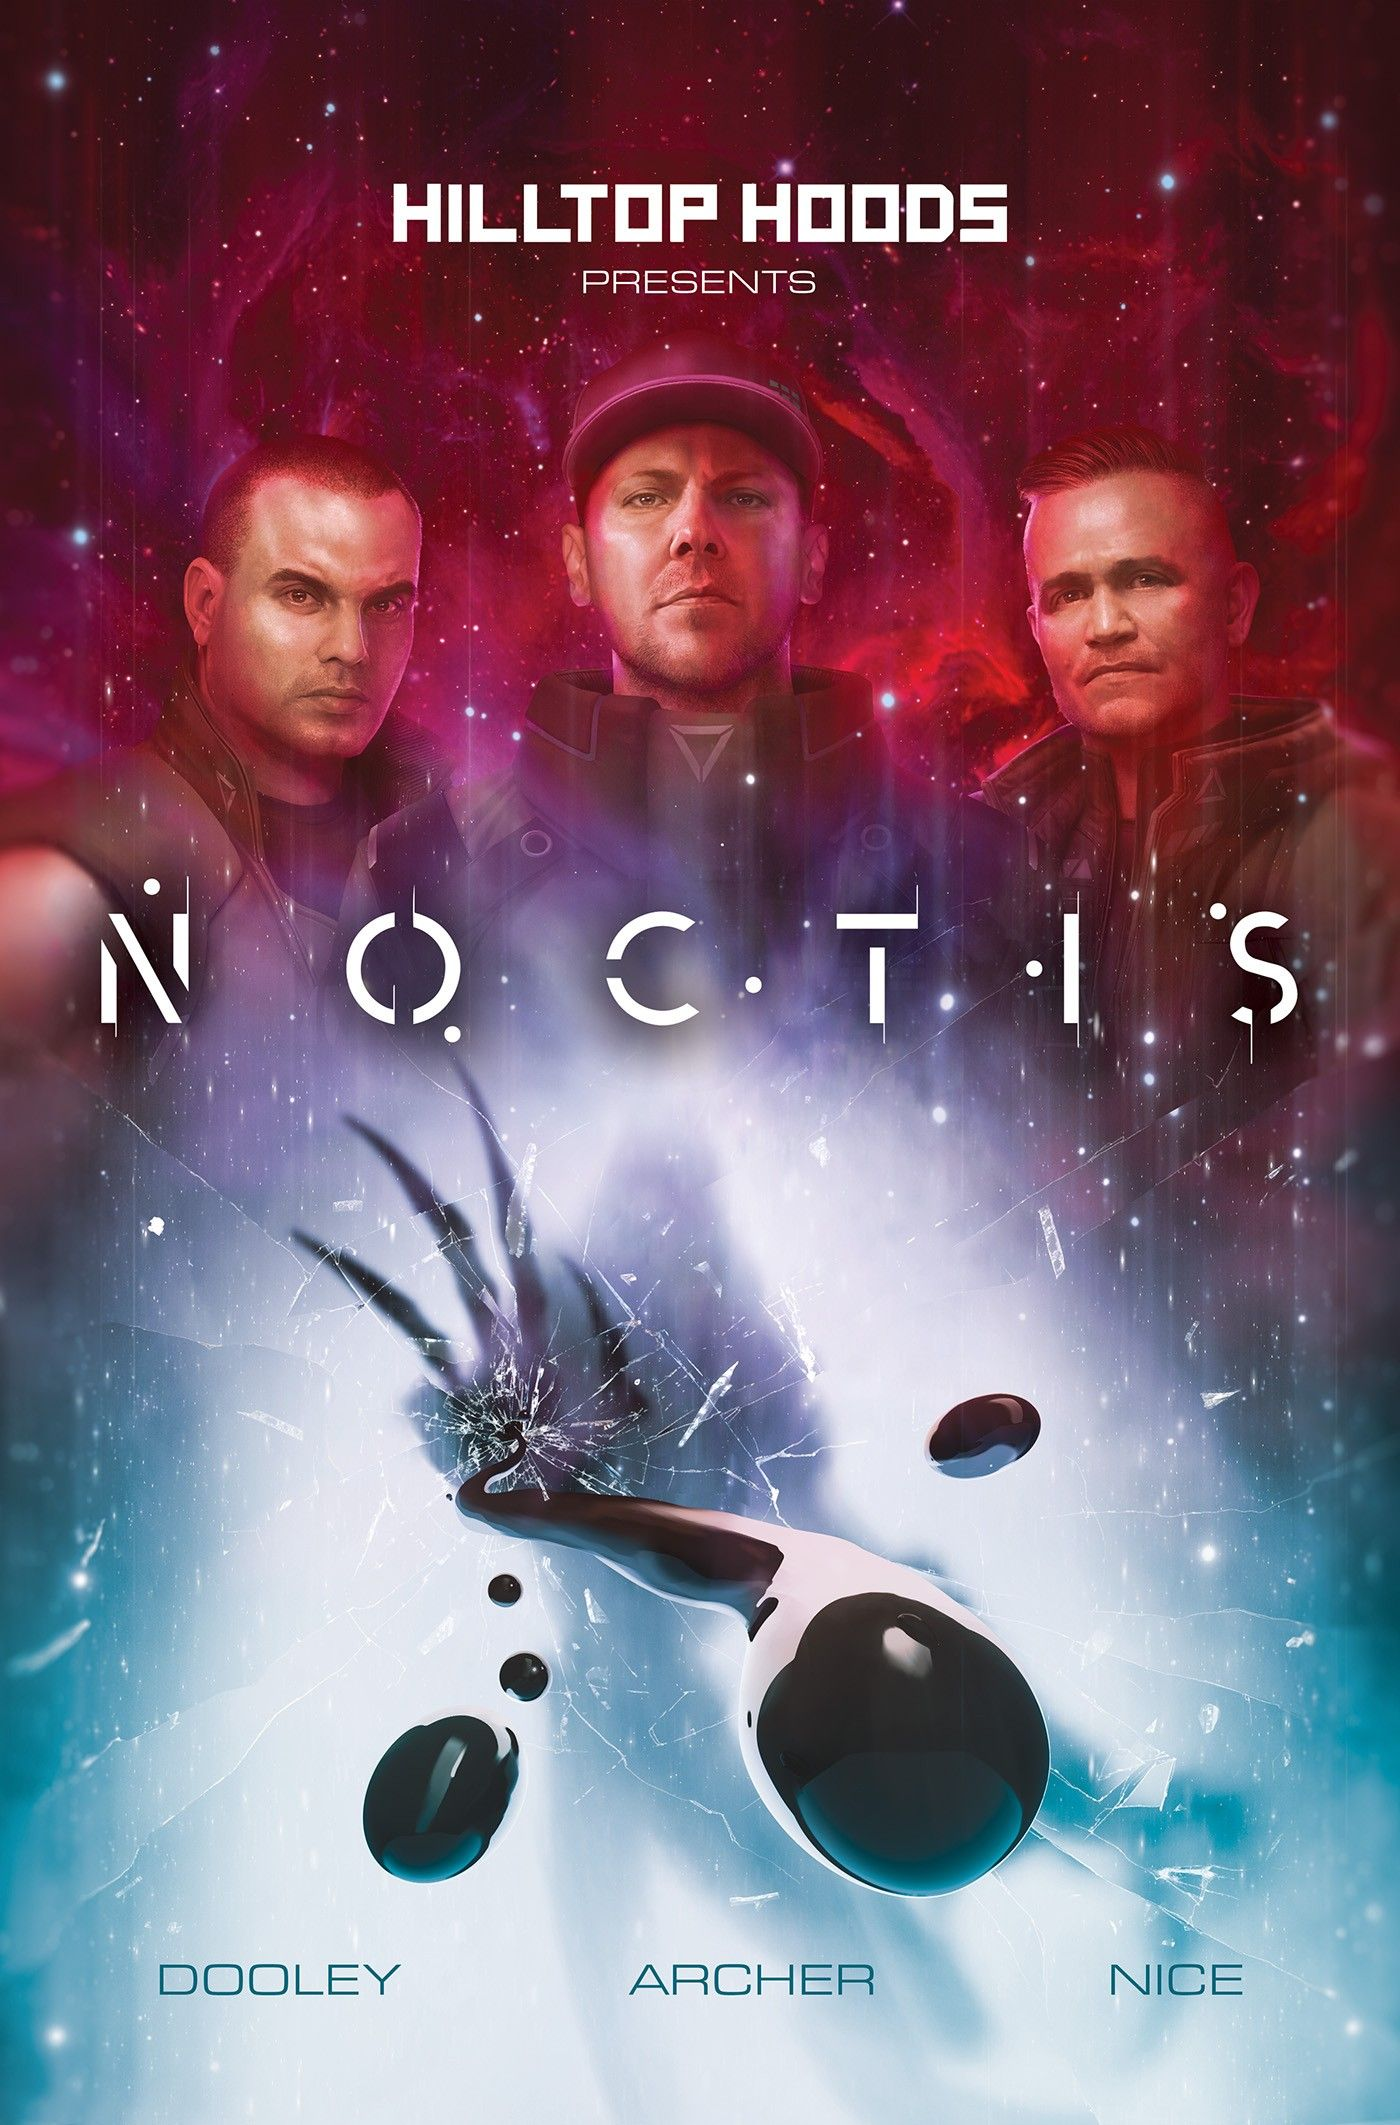 Hilltop Hoods and Z2 Comics announce the group's first foray into comics in Noctis